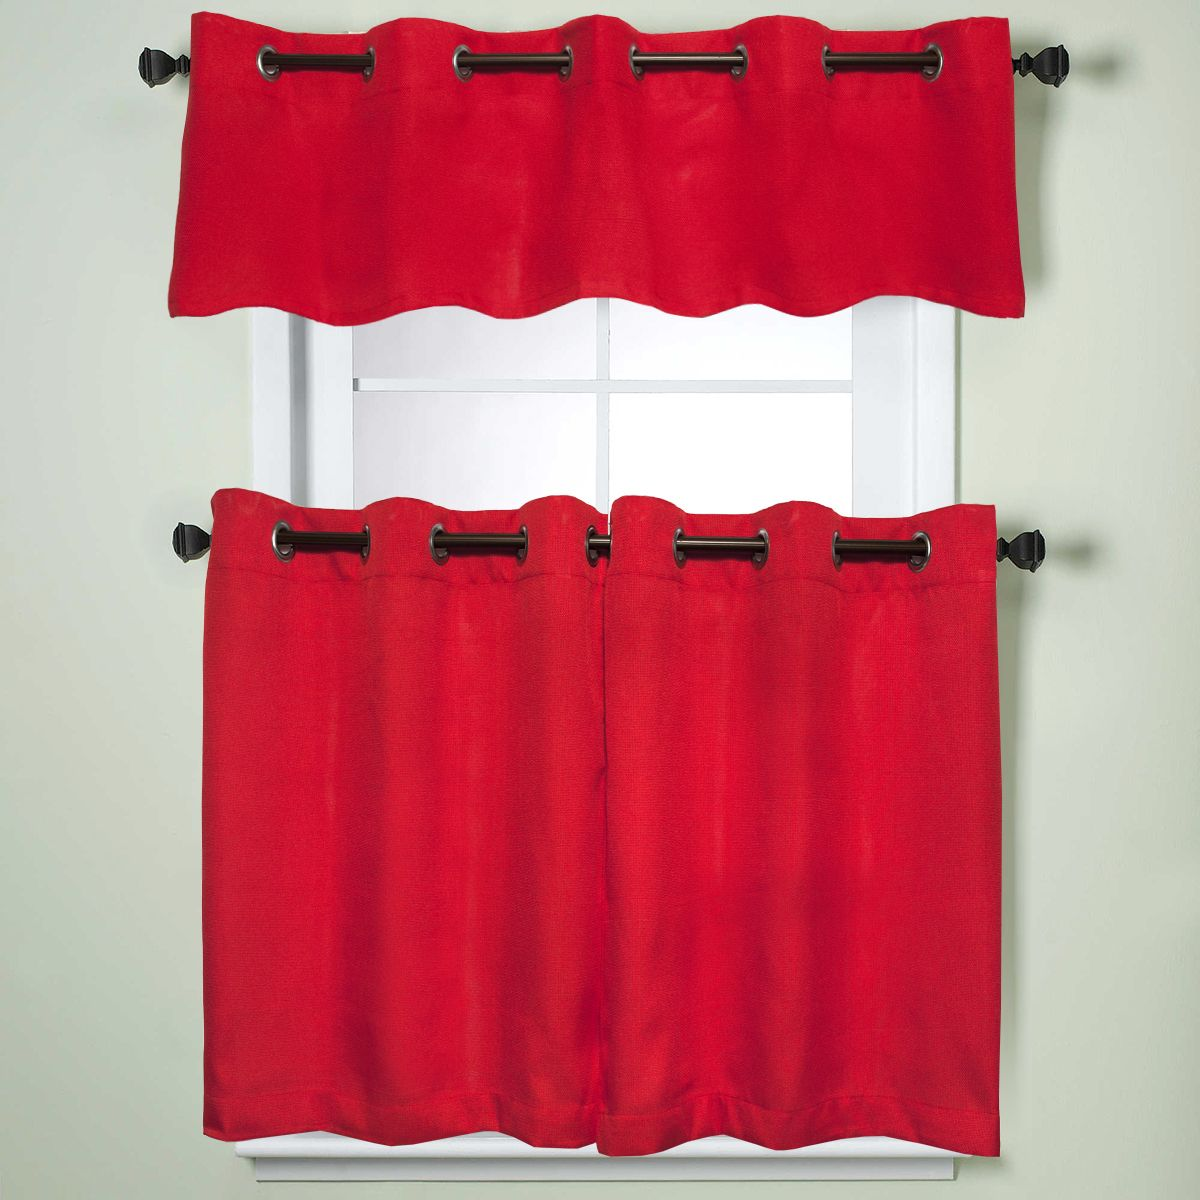 incredible Solid Red Valances Part - 4: Modern Sublte Textured Solid Red Kitchen Curtains With Grommets Tiers and  Valance (36 inch tier pair, red)